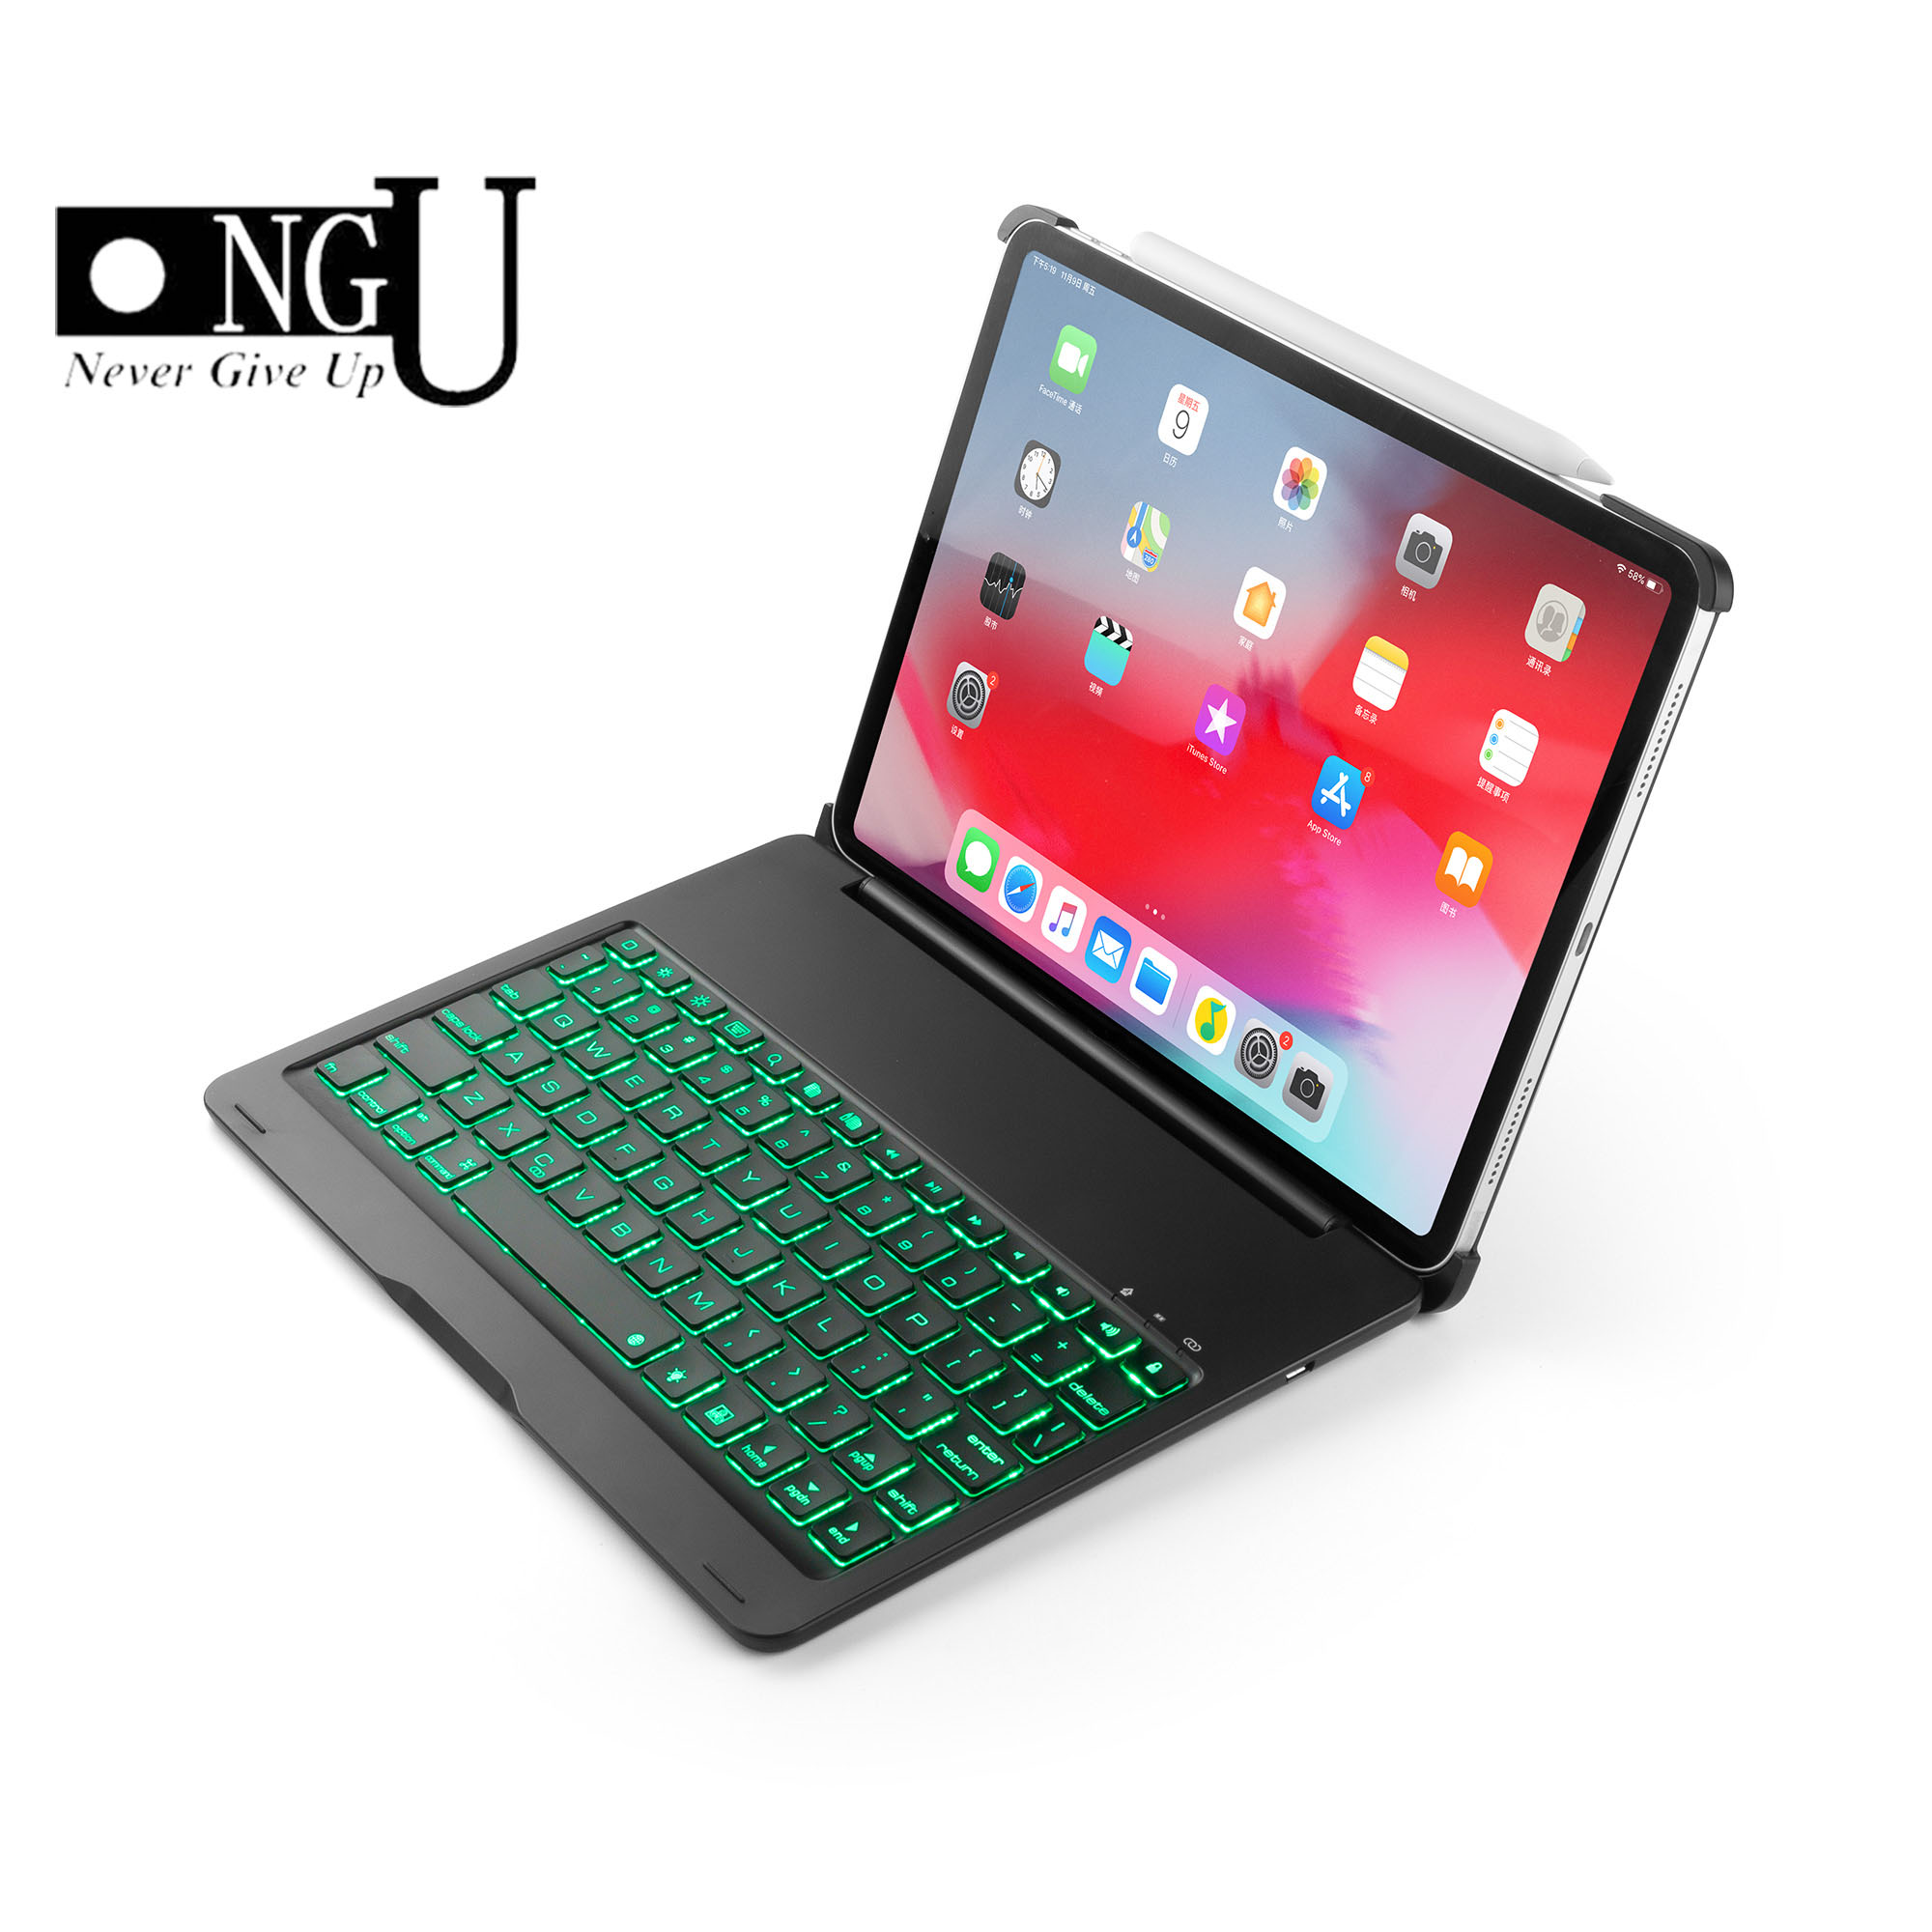 Aluminum ABS 7 Colors Backlit Light Wireless Bluetooth Keyboard Folio Stand Case Cover For Apple iPad Pro 11 A1979 A1983 2018Aluminum ABS 7 Colors Backlit Light Wireless Bluetooth Keyboard Folio Stand Case Cover For Apple iPad Pro 11 A1979 A1983 2018